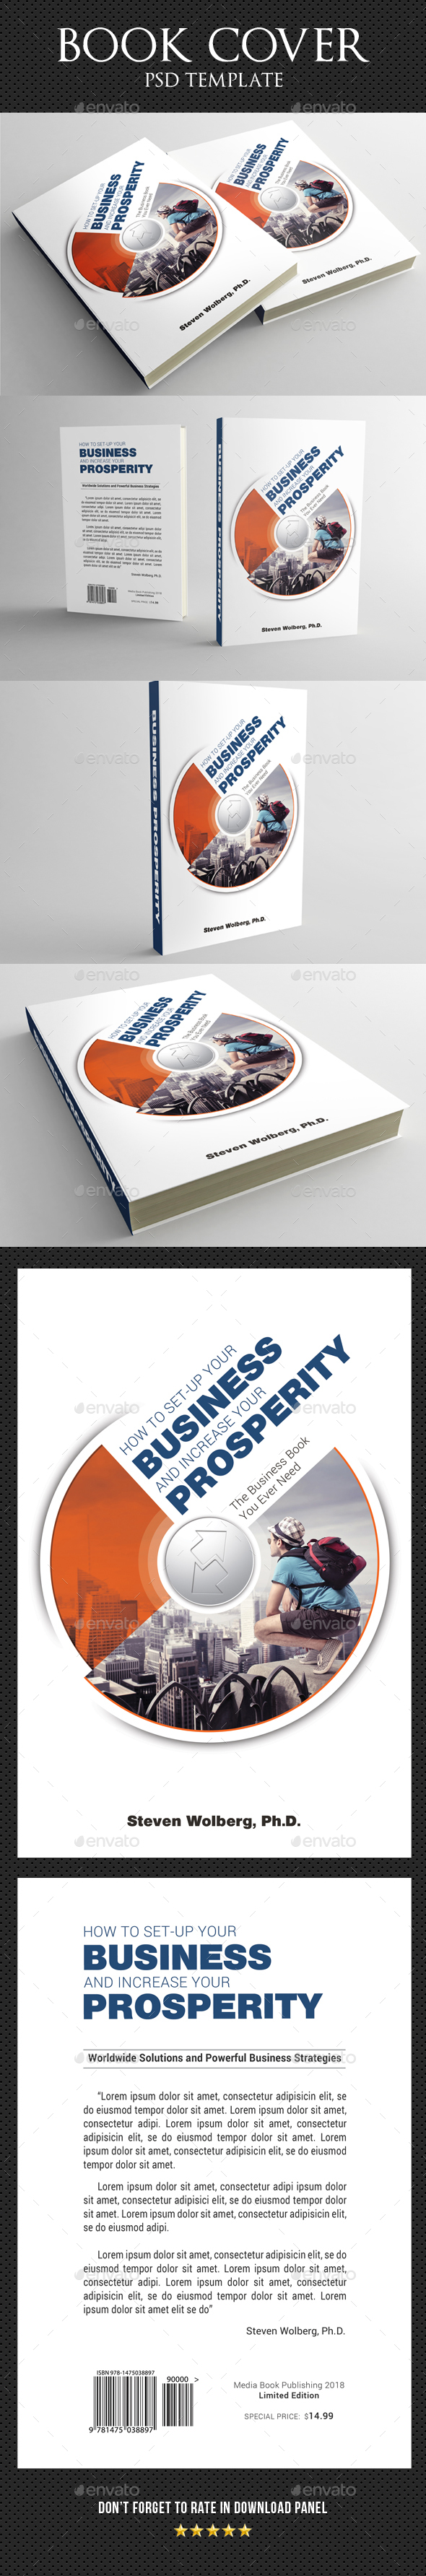 Book Cover Template 47 - Miscellaneous Print Templates